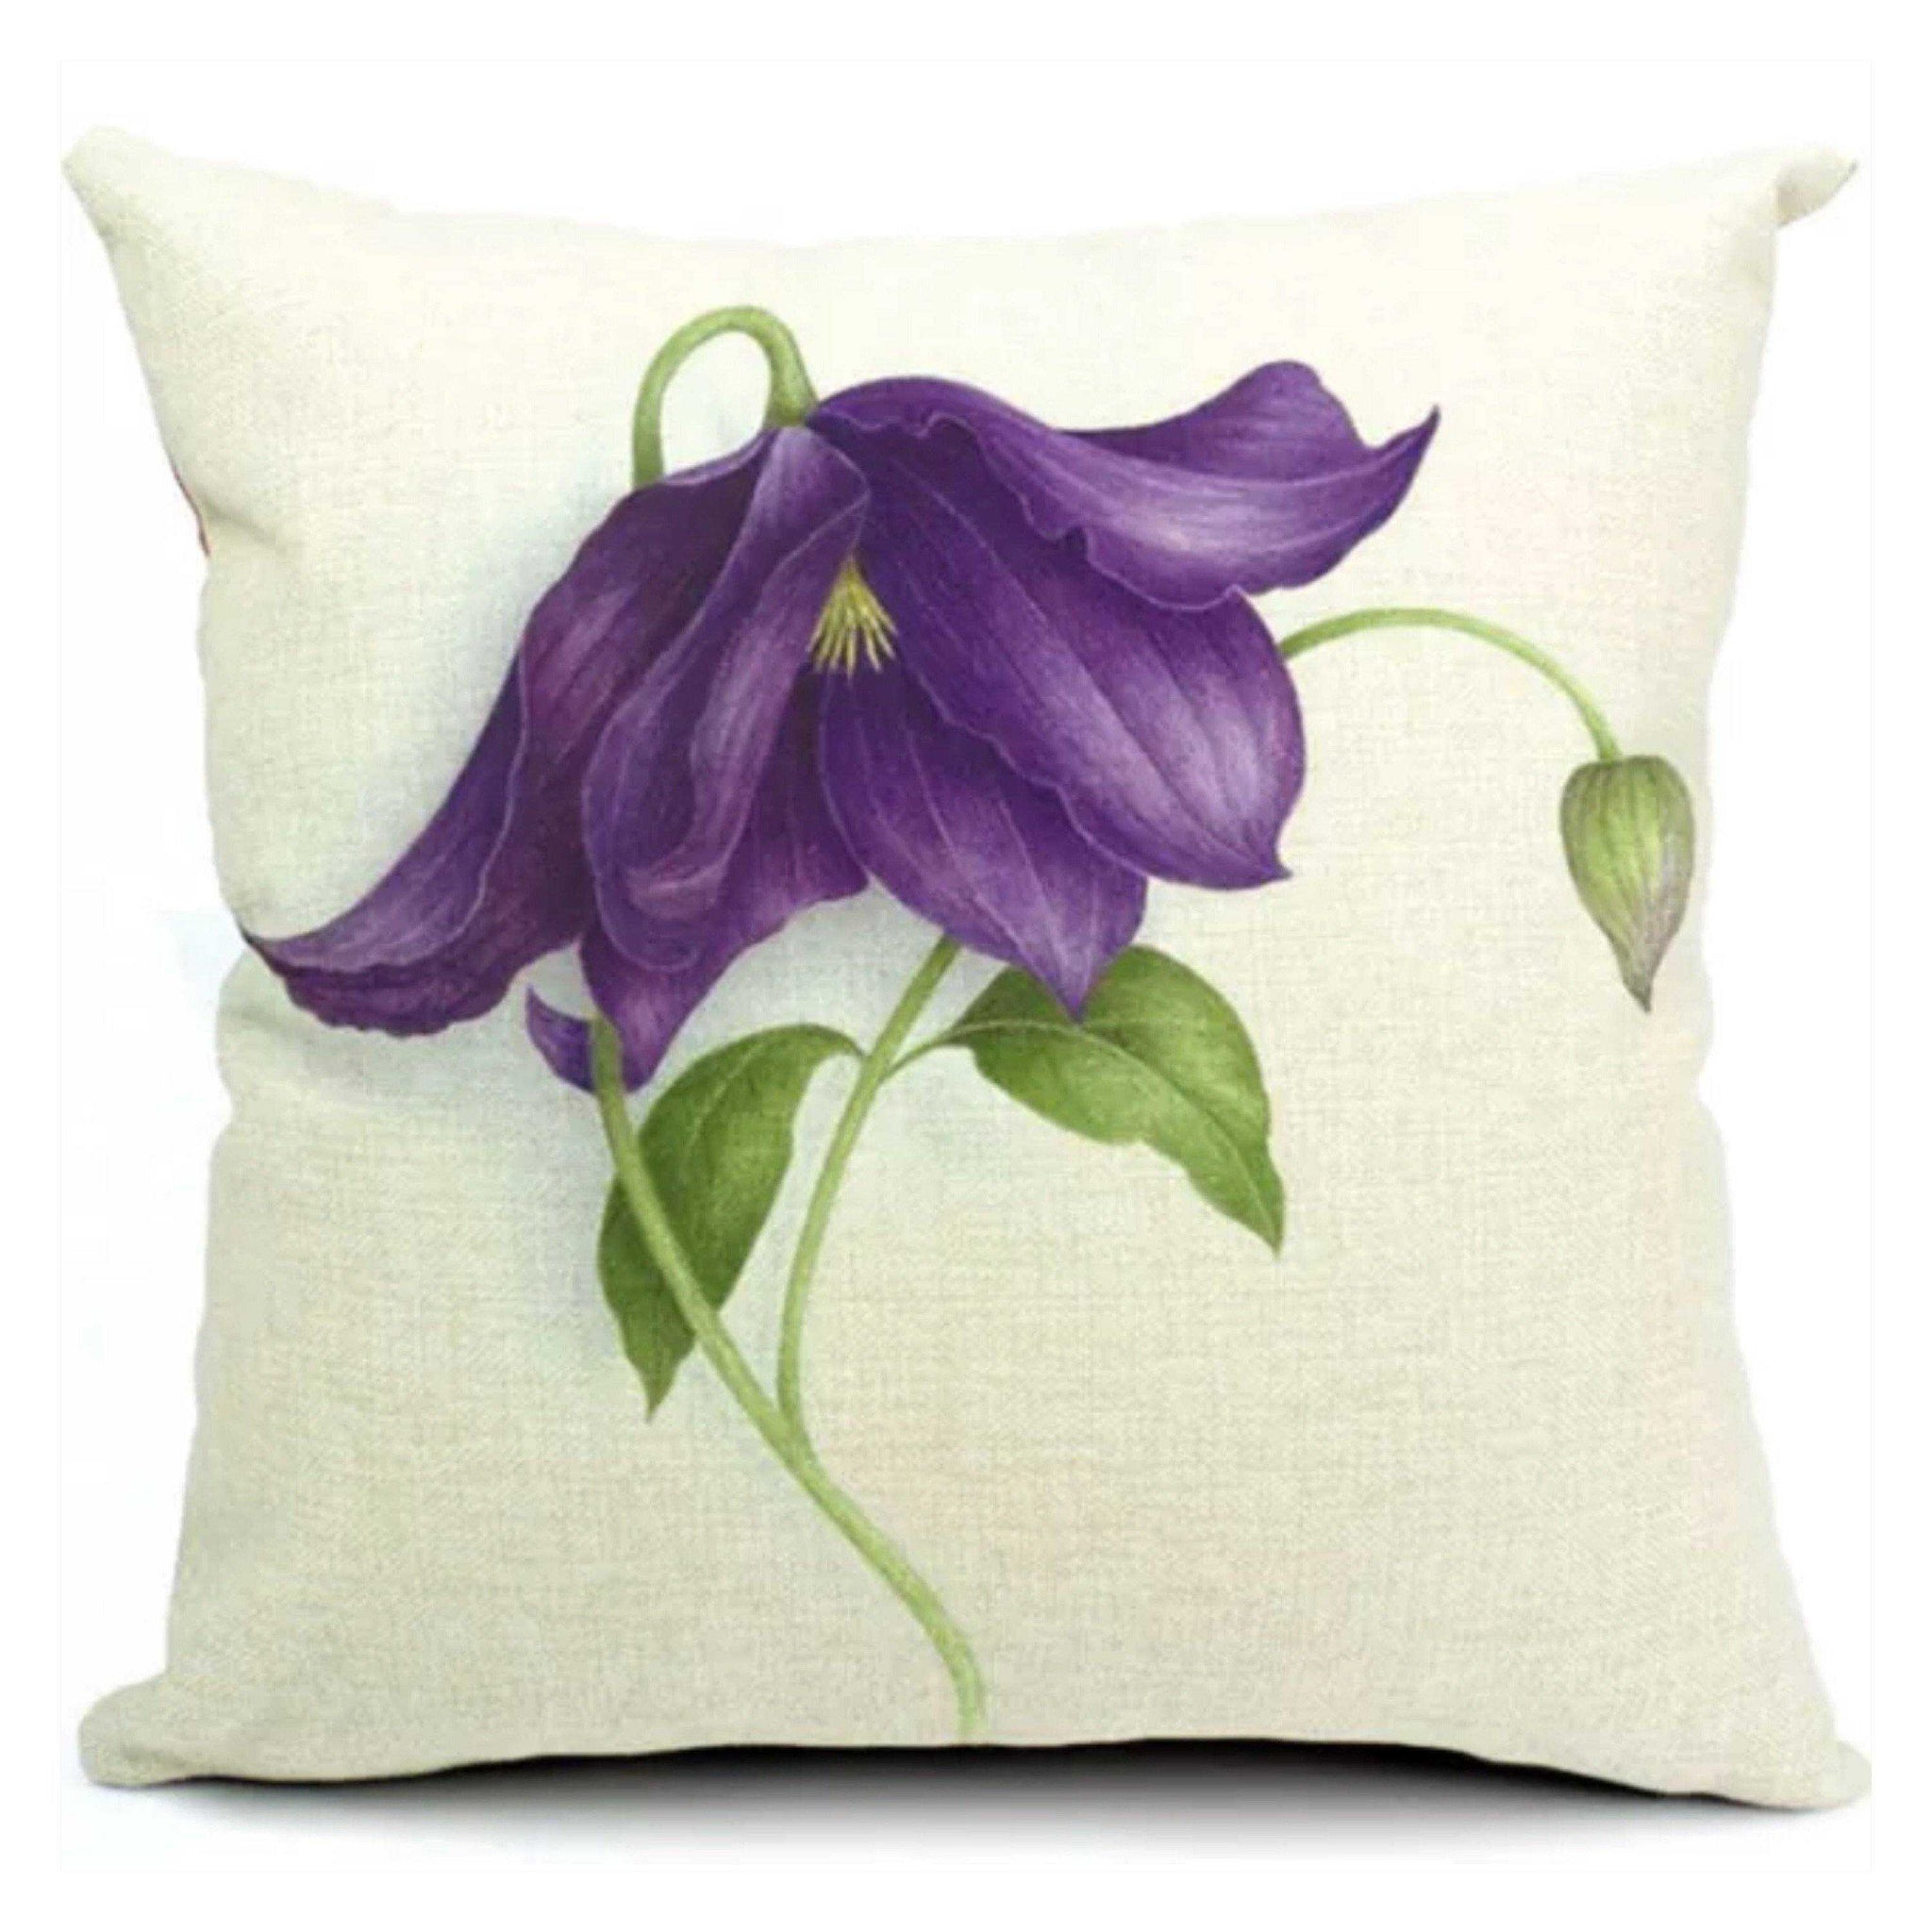 Cushion Pillow Purple Vintage Flower - The Renmy Store